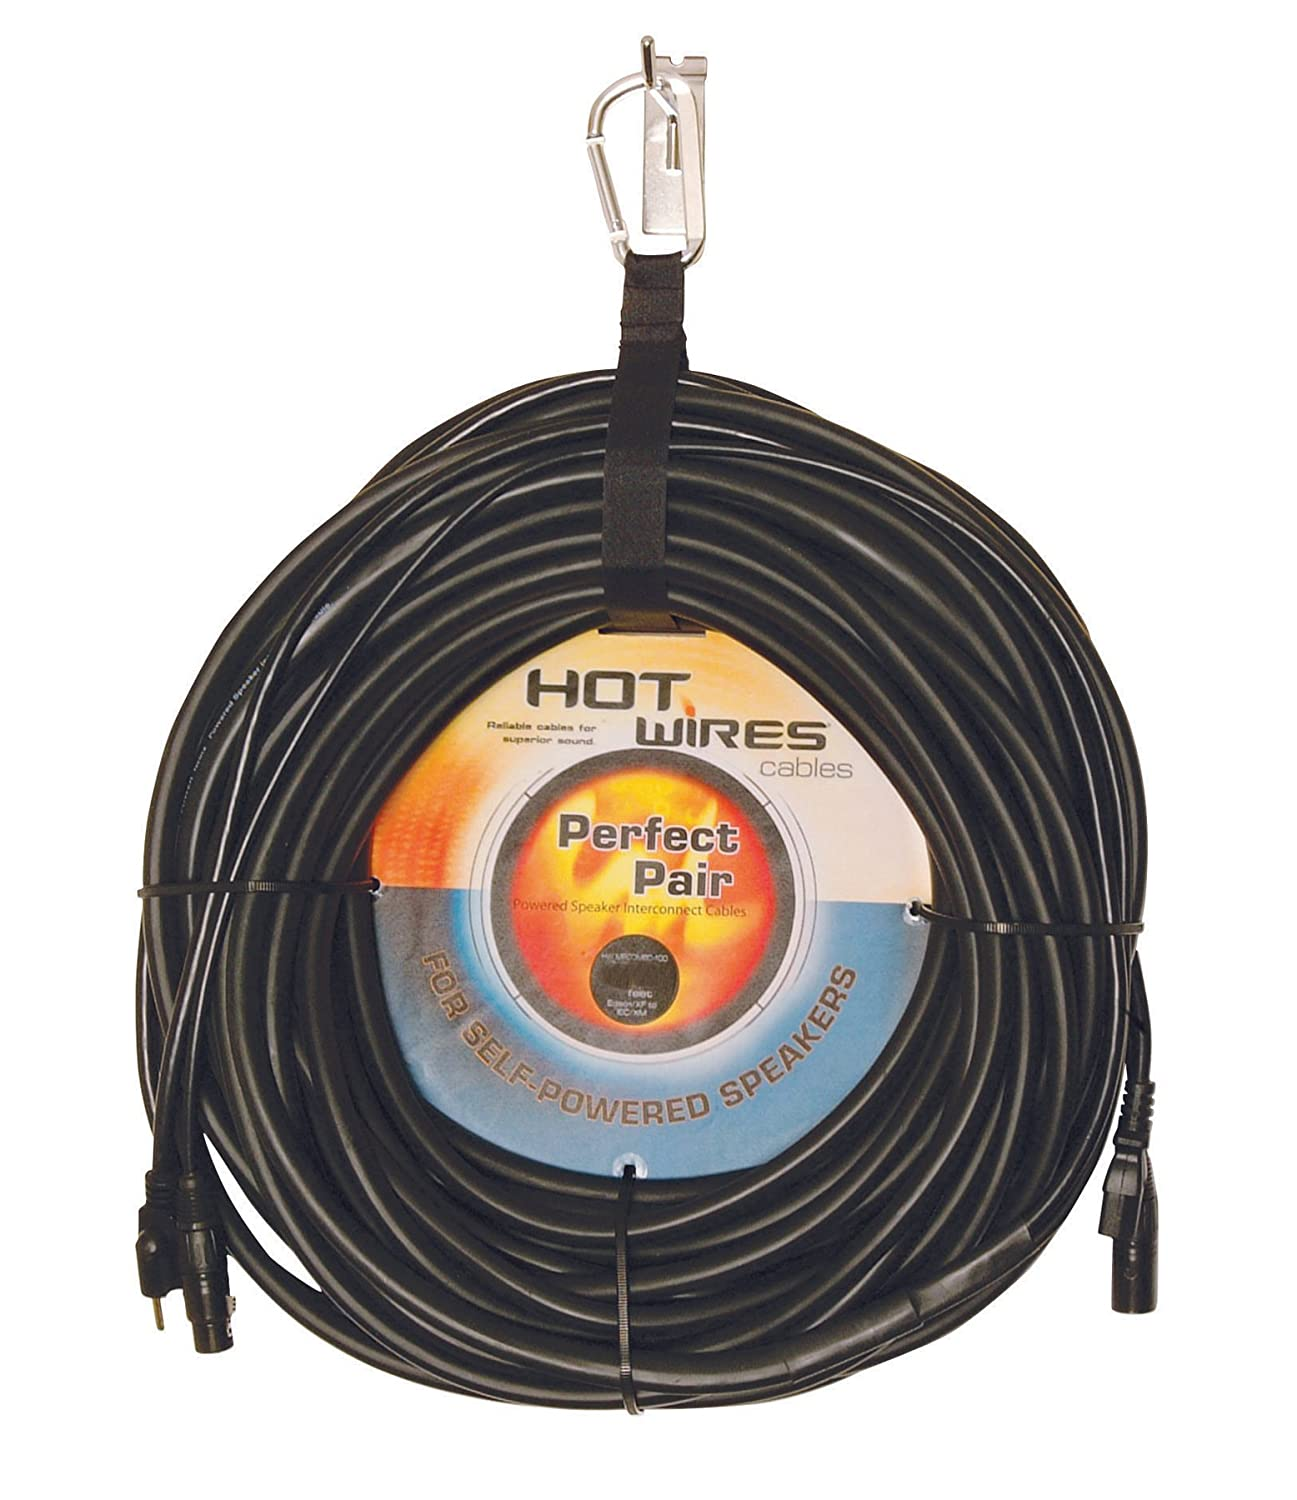 Hot Wires MP Combo Power and Audio Powered Speaker XLR Cable onstage my410